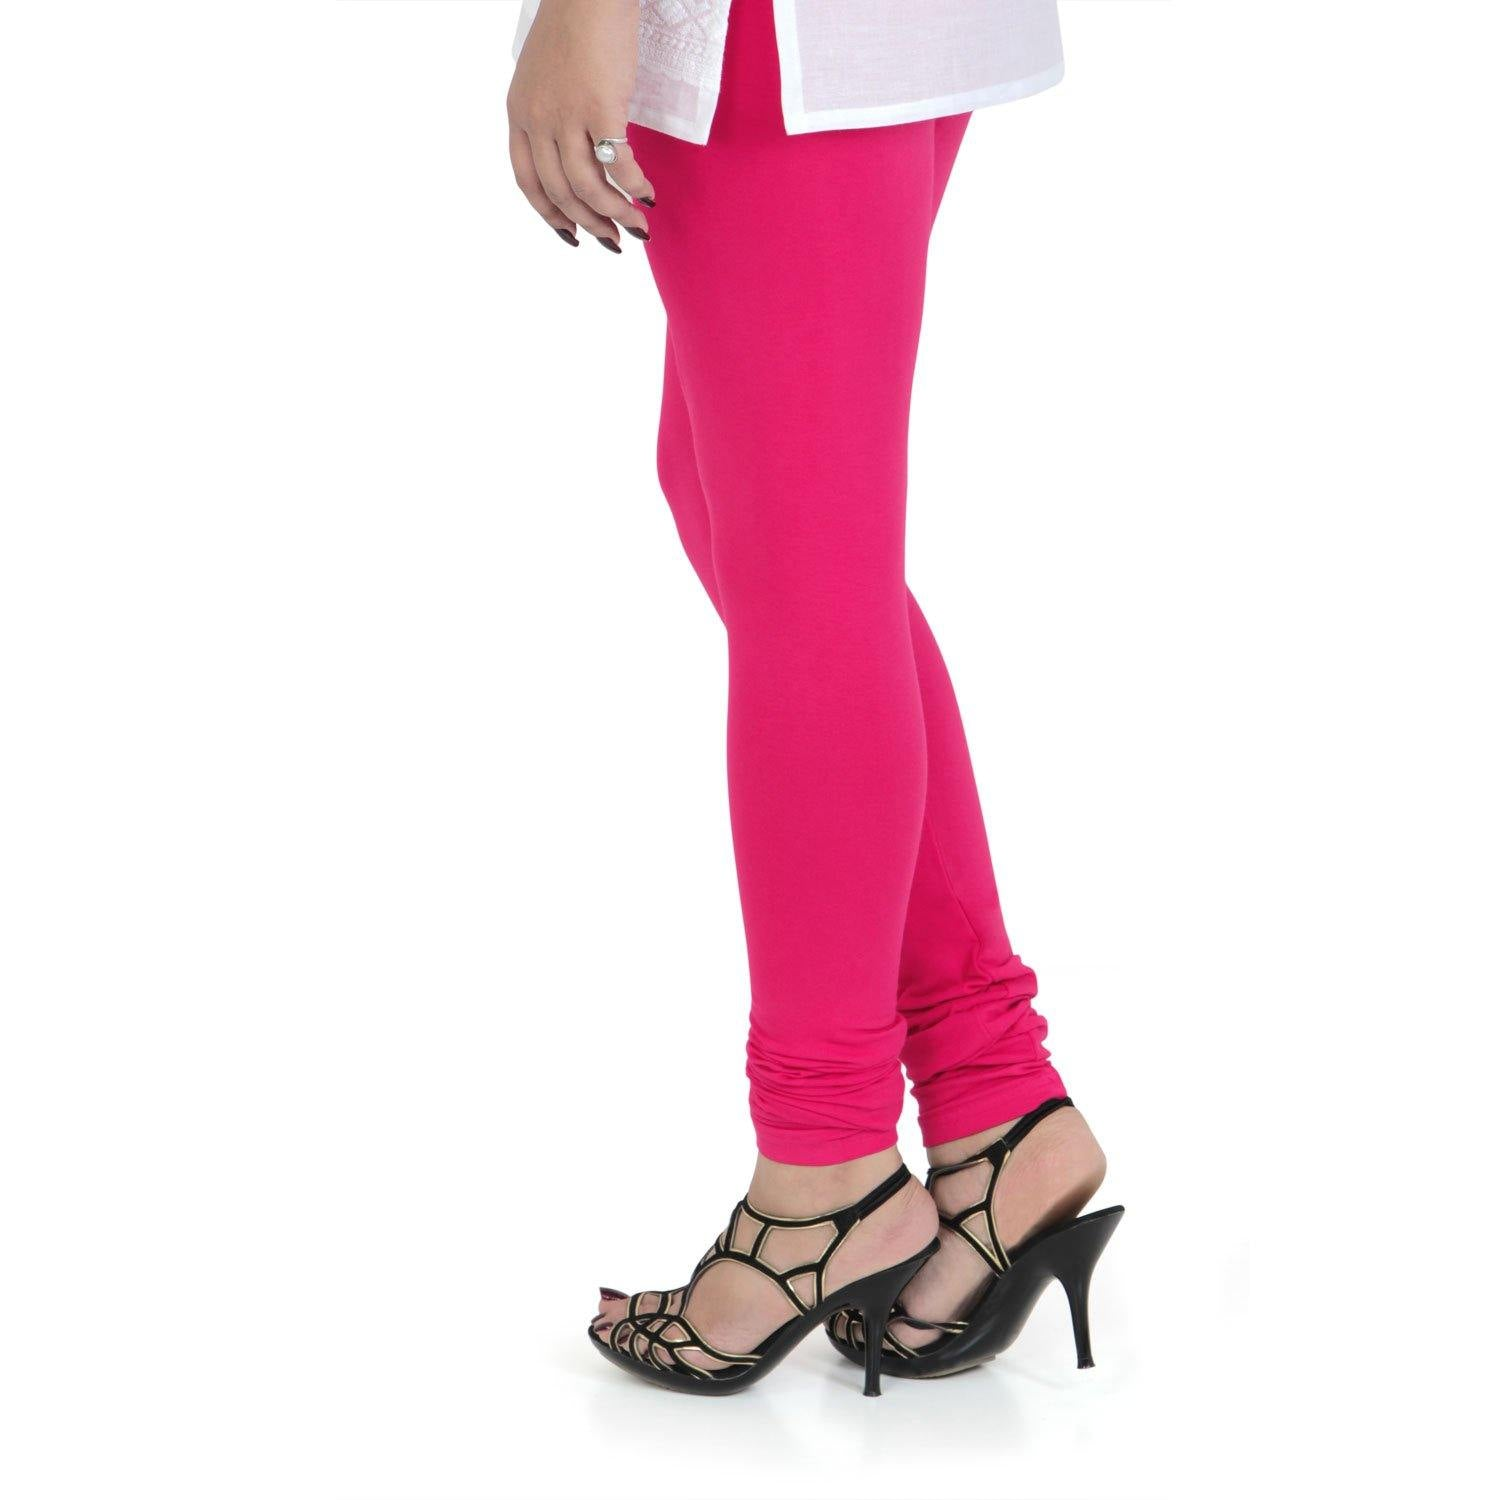 Vami Women's Cotton Stretchable Churidar Legging - Electro Pink